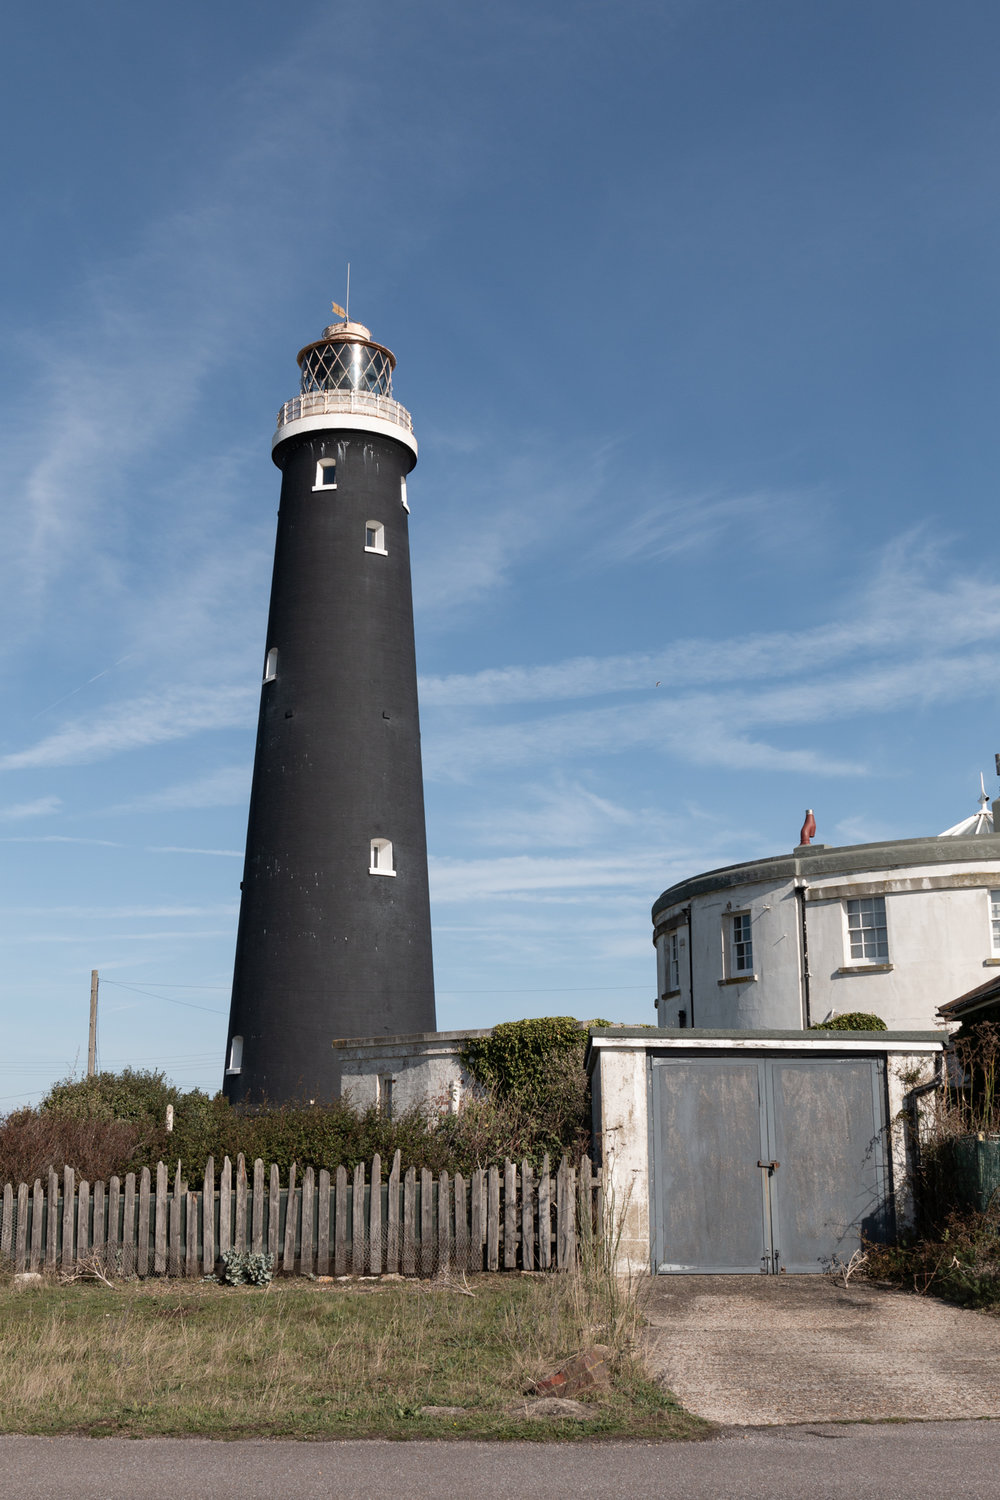 Dungeness, England | Ciao Fabello